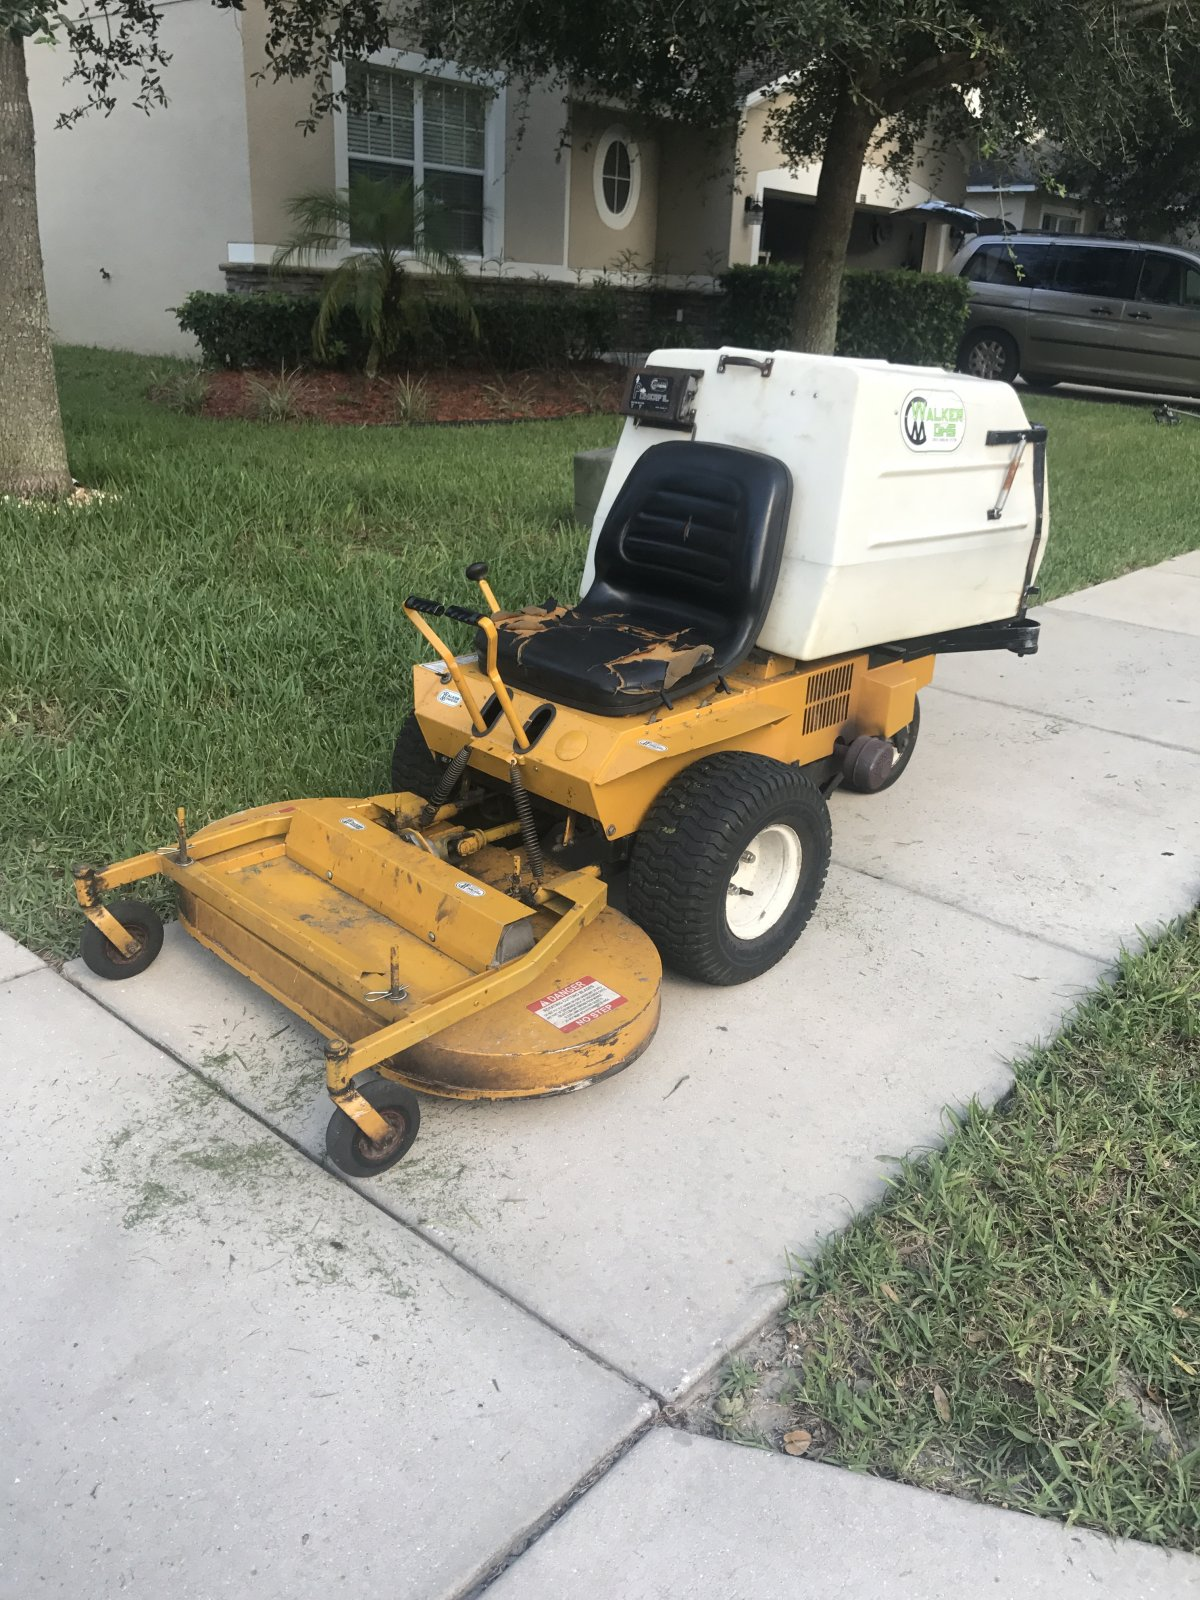 Walker M36 42 Repower Help Lawnsite Mower Wiring Diagram I Own A Small Engine Repair Business So Know My Way Around Mowers And Have Done Countless Swaps Before But Wanted To See If Anyone Had Any Pointers